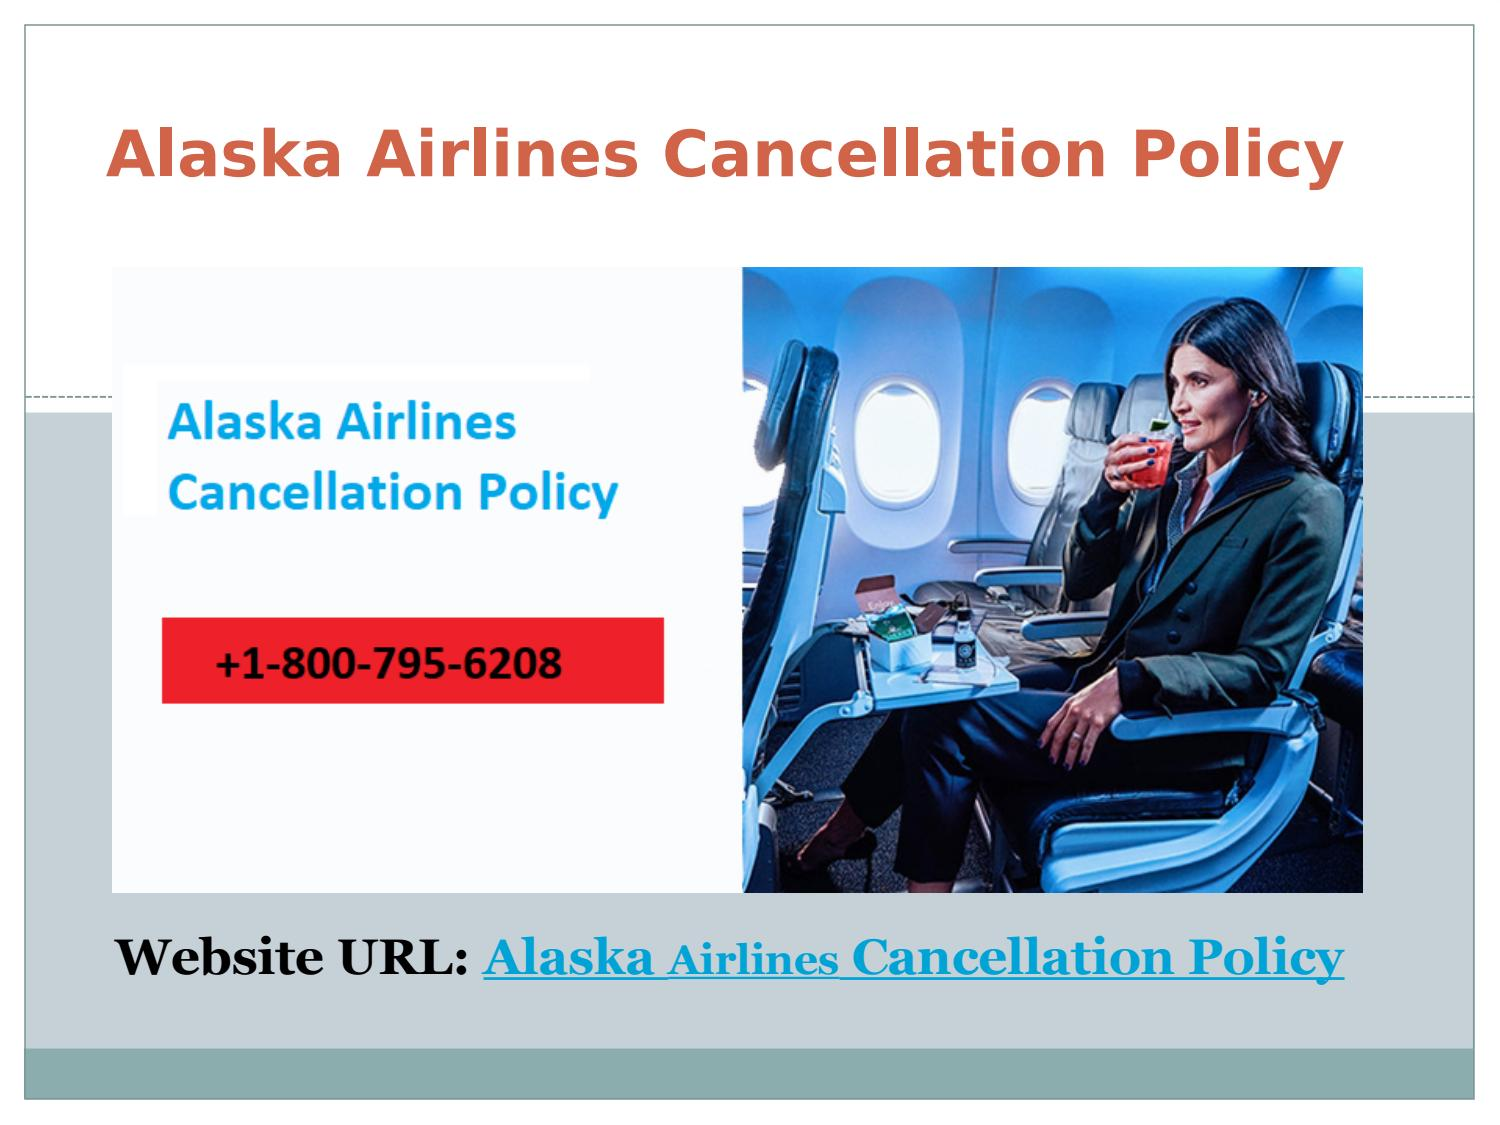 Alaska Airlines Cancellation Policy